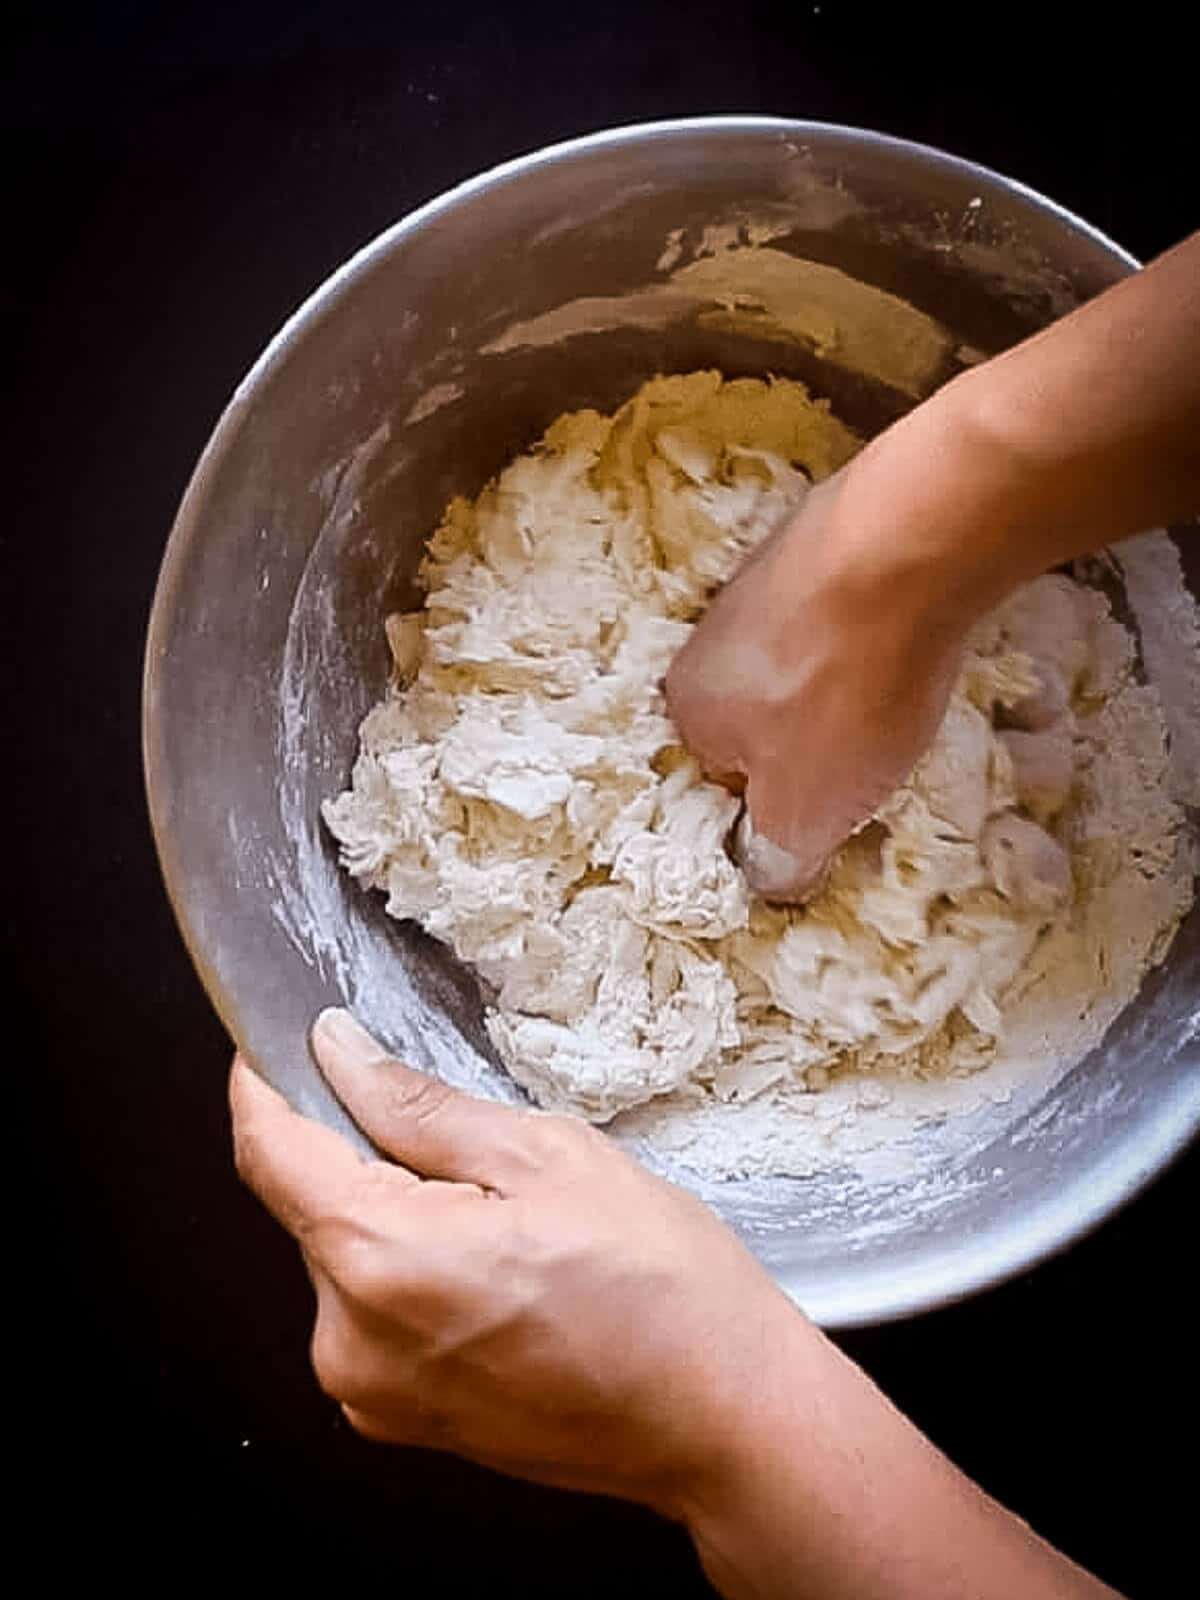 kneading bread buns Ingredients